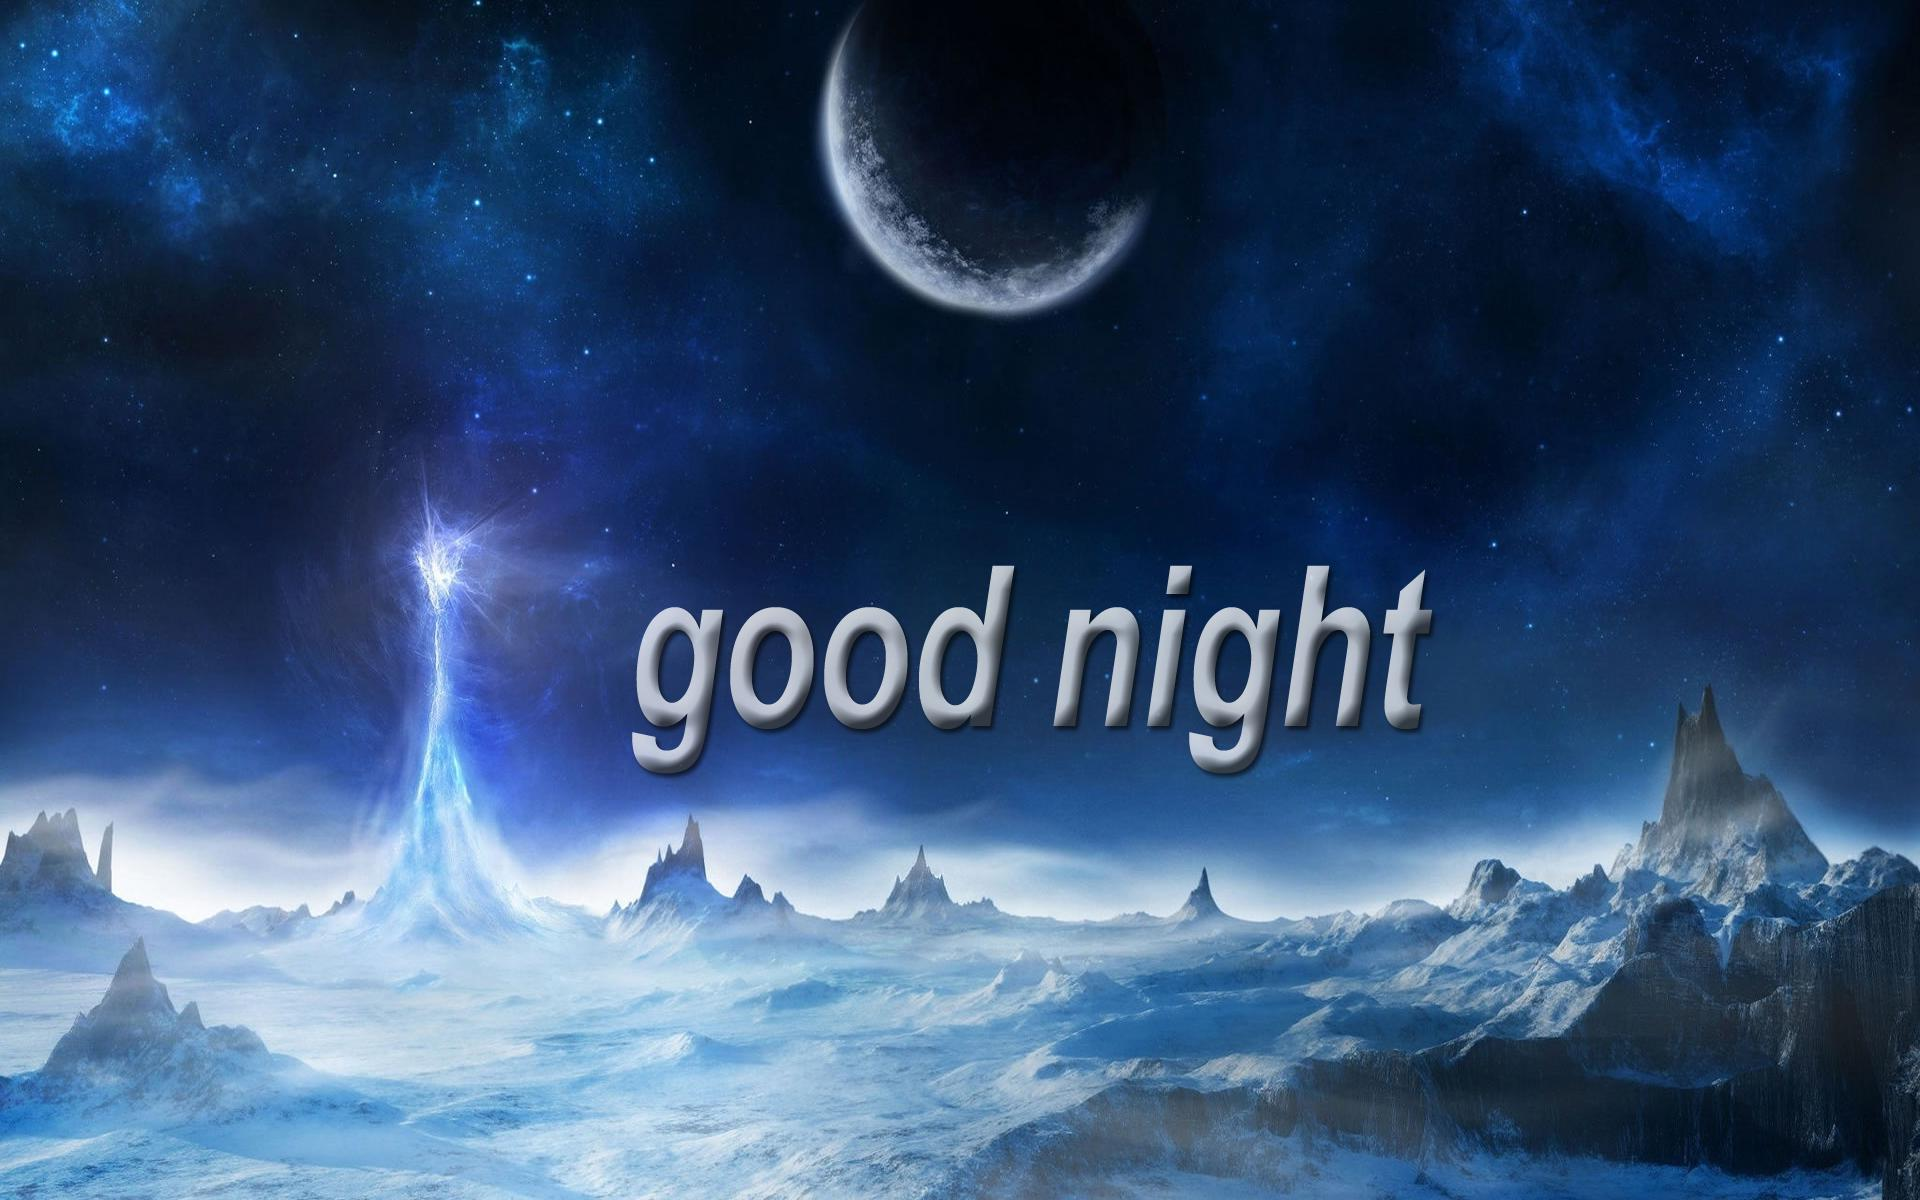 Good Night Love Message Wallpaper : Good Night Wallpapers, Pictures, Images